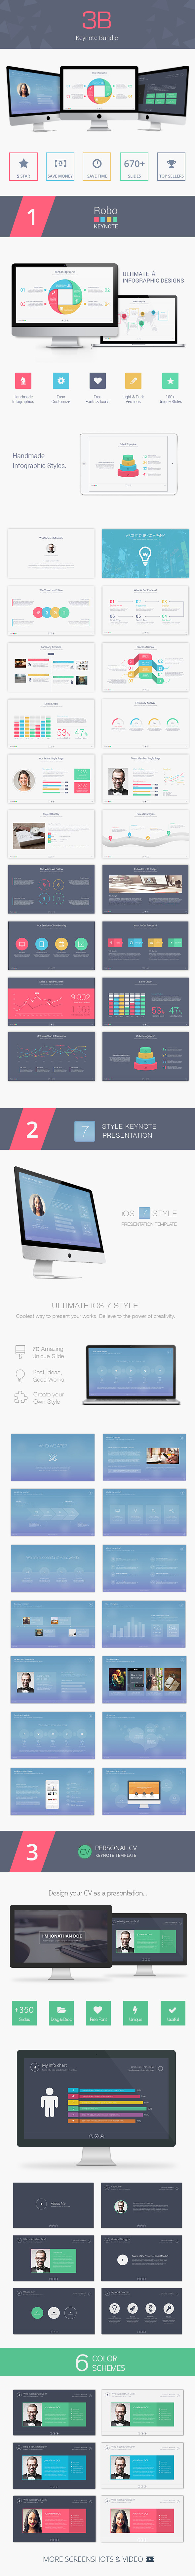 3B Keynote Bundle - Keynote Templates Presentation Templates